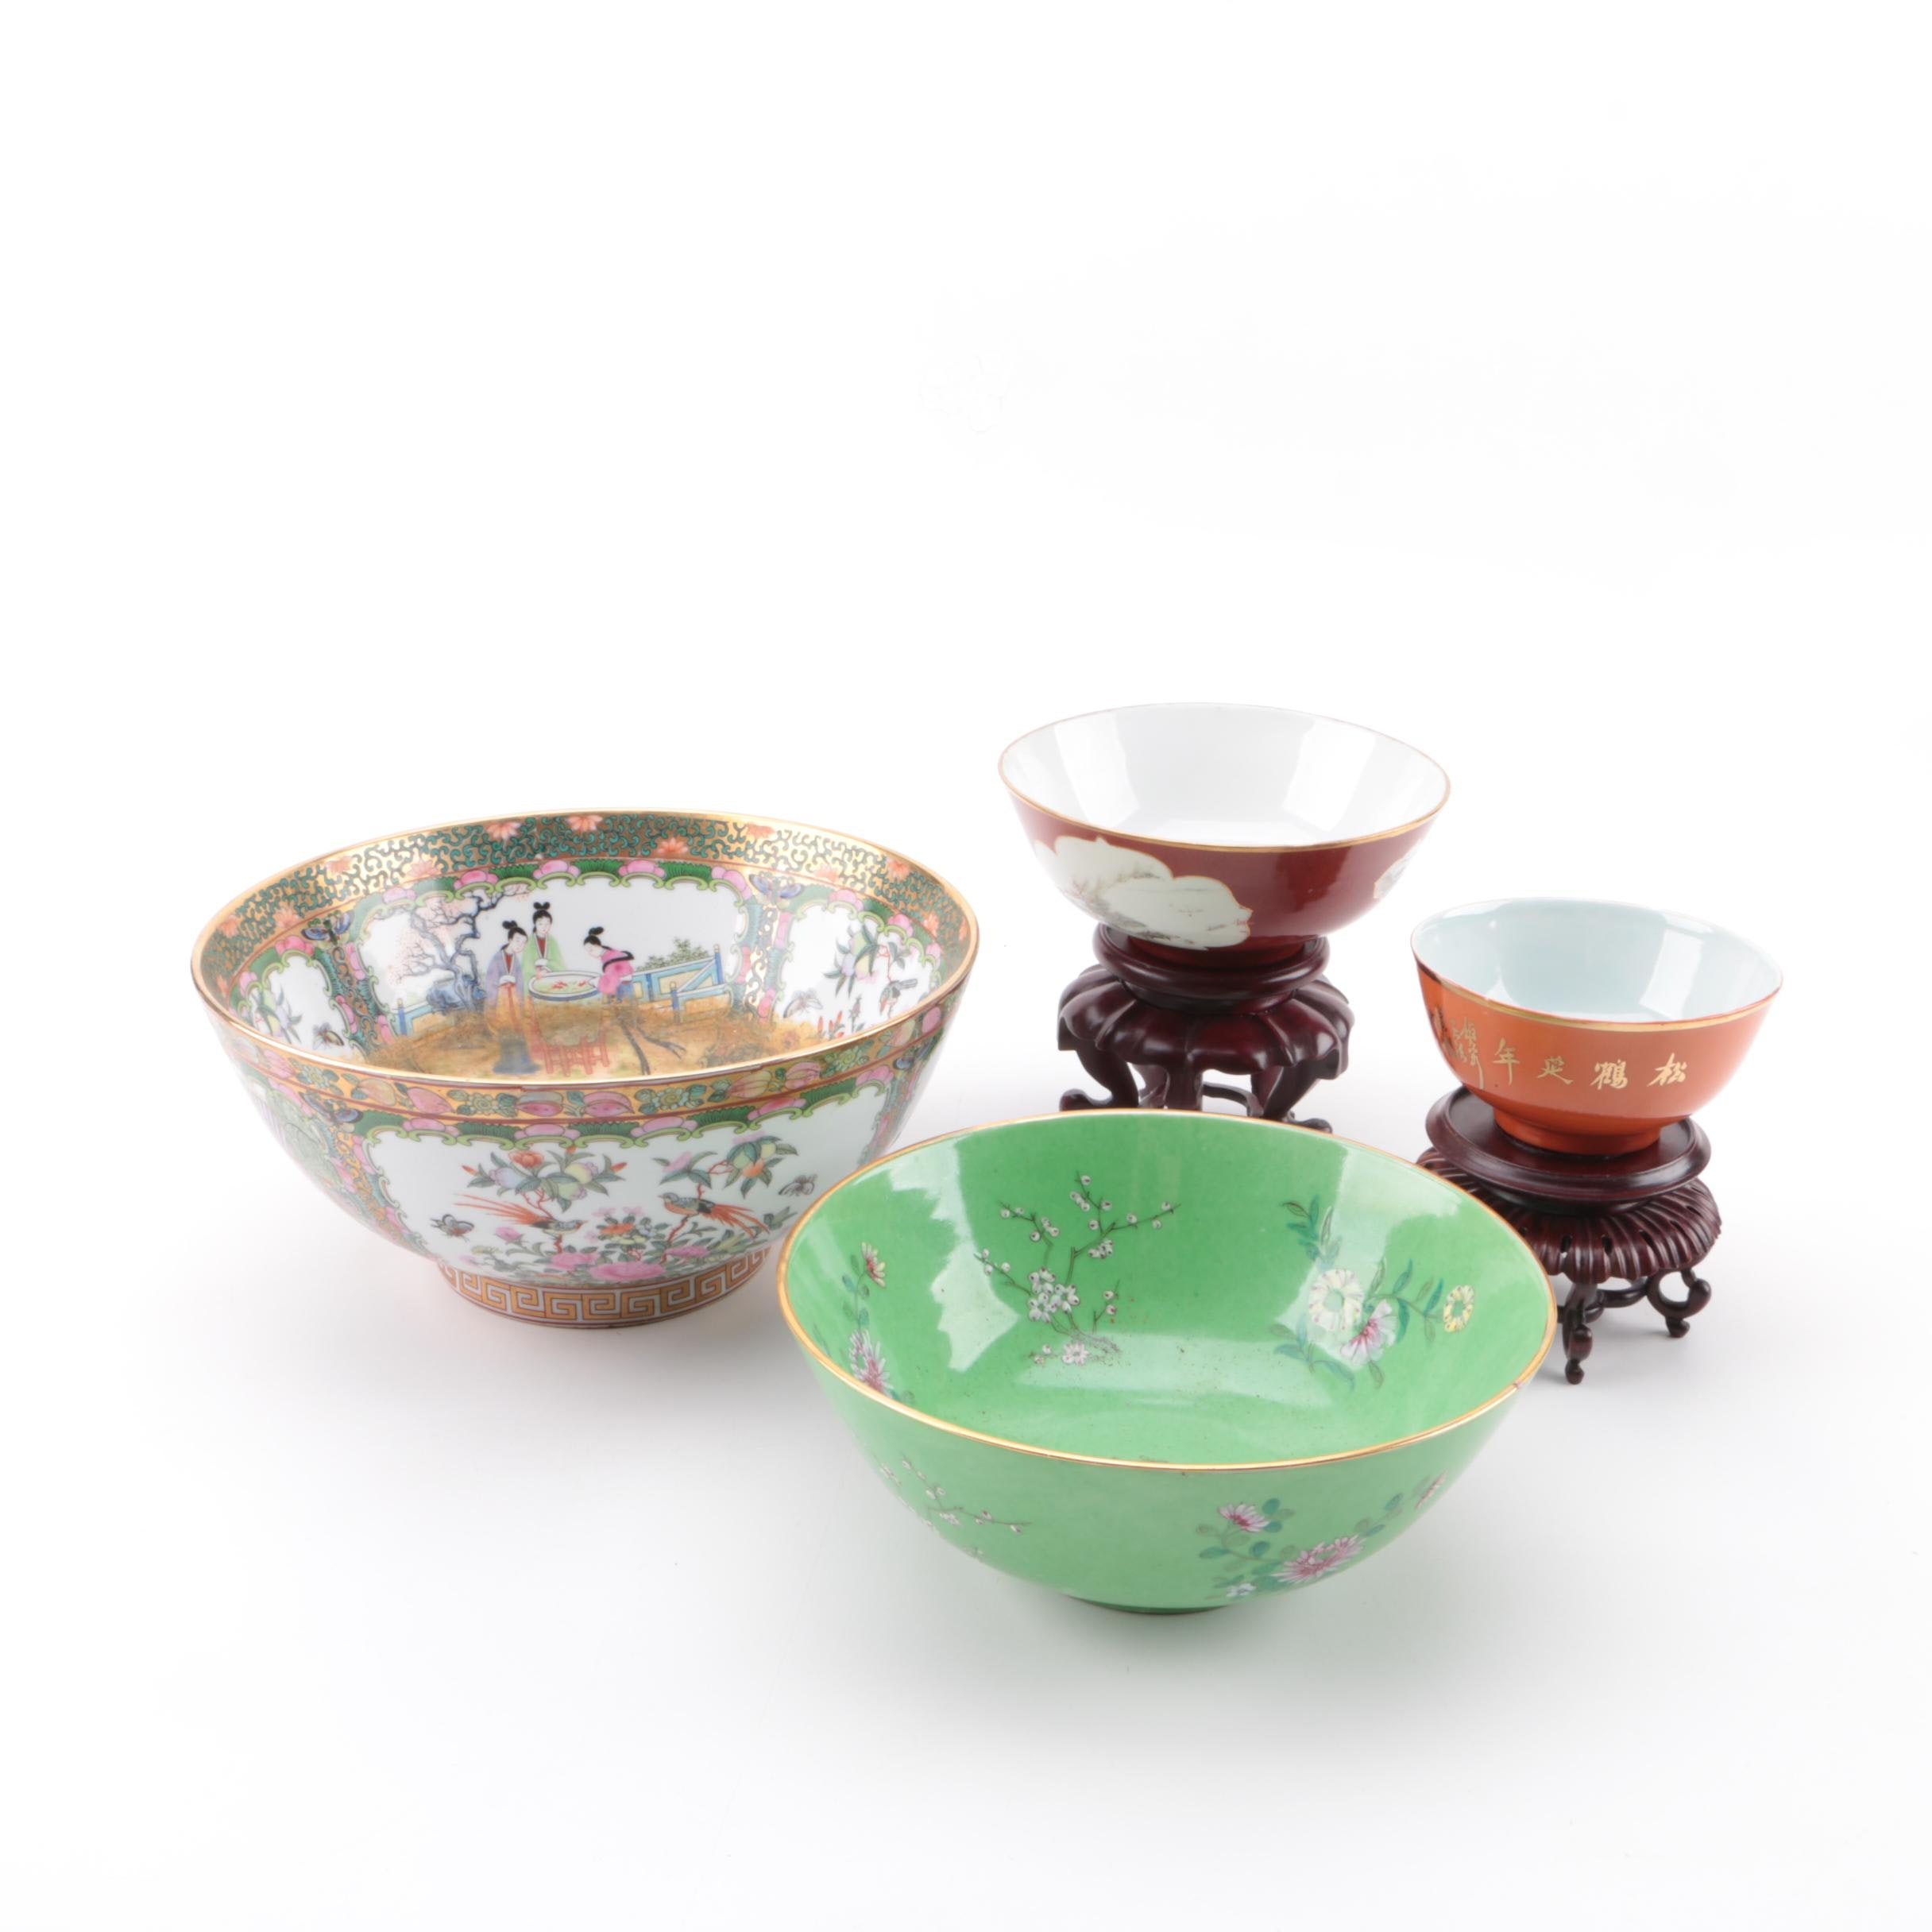 Chinese Porcelain Bowls with Stands